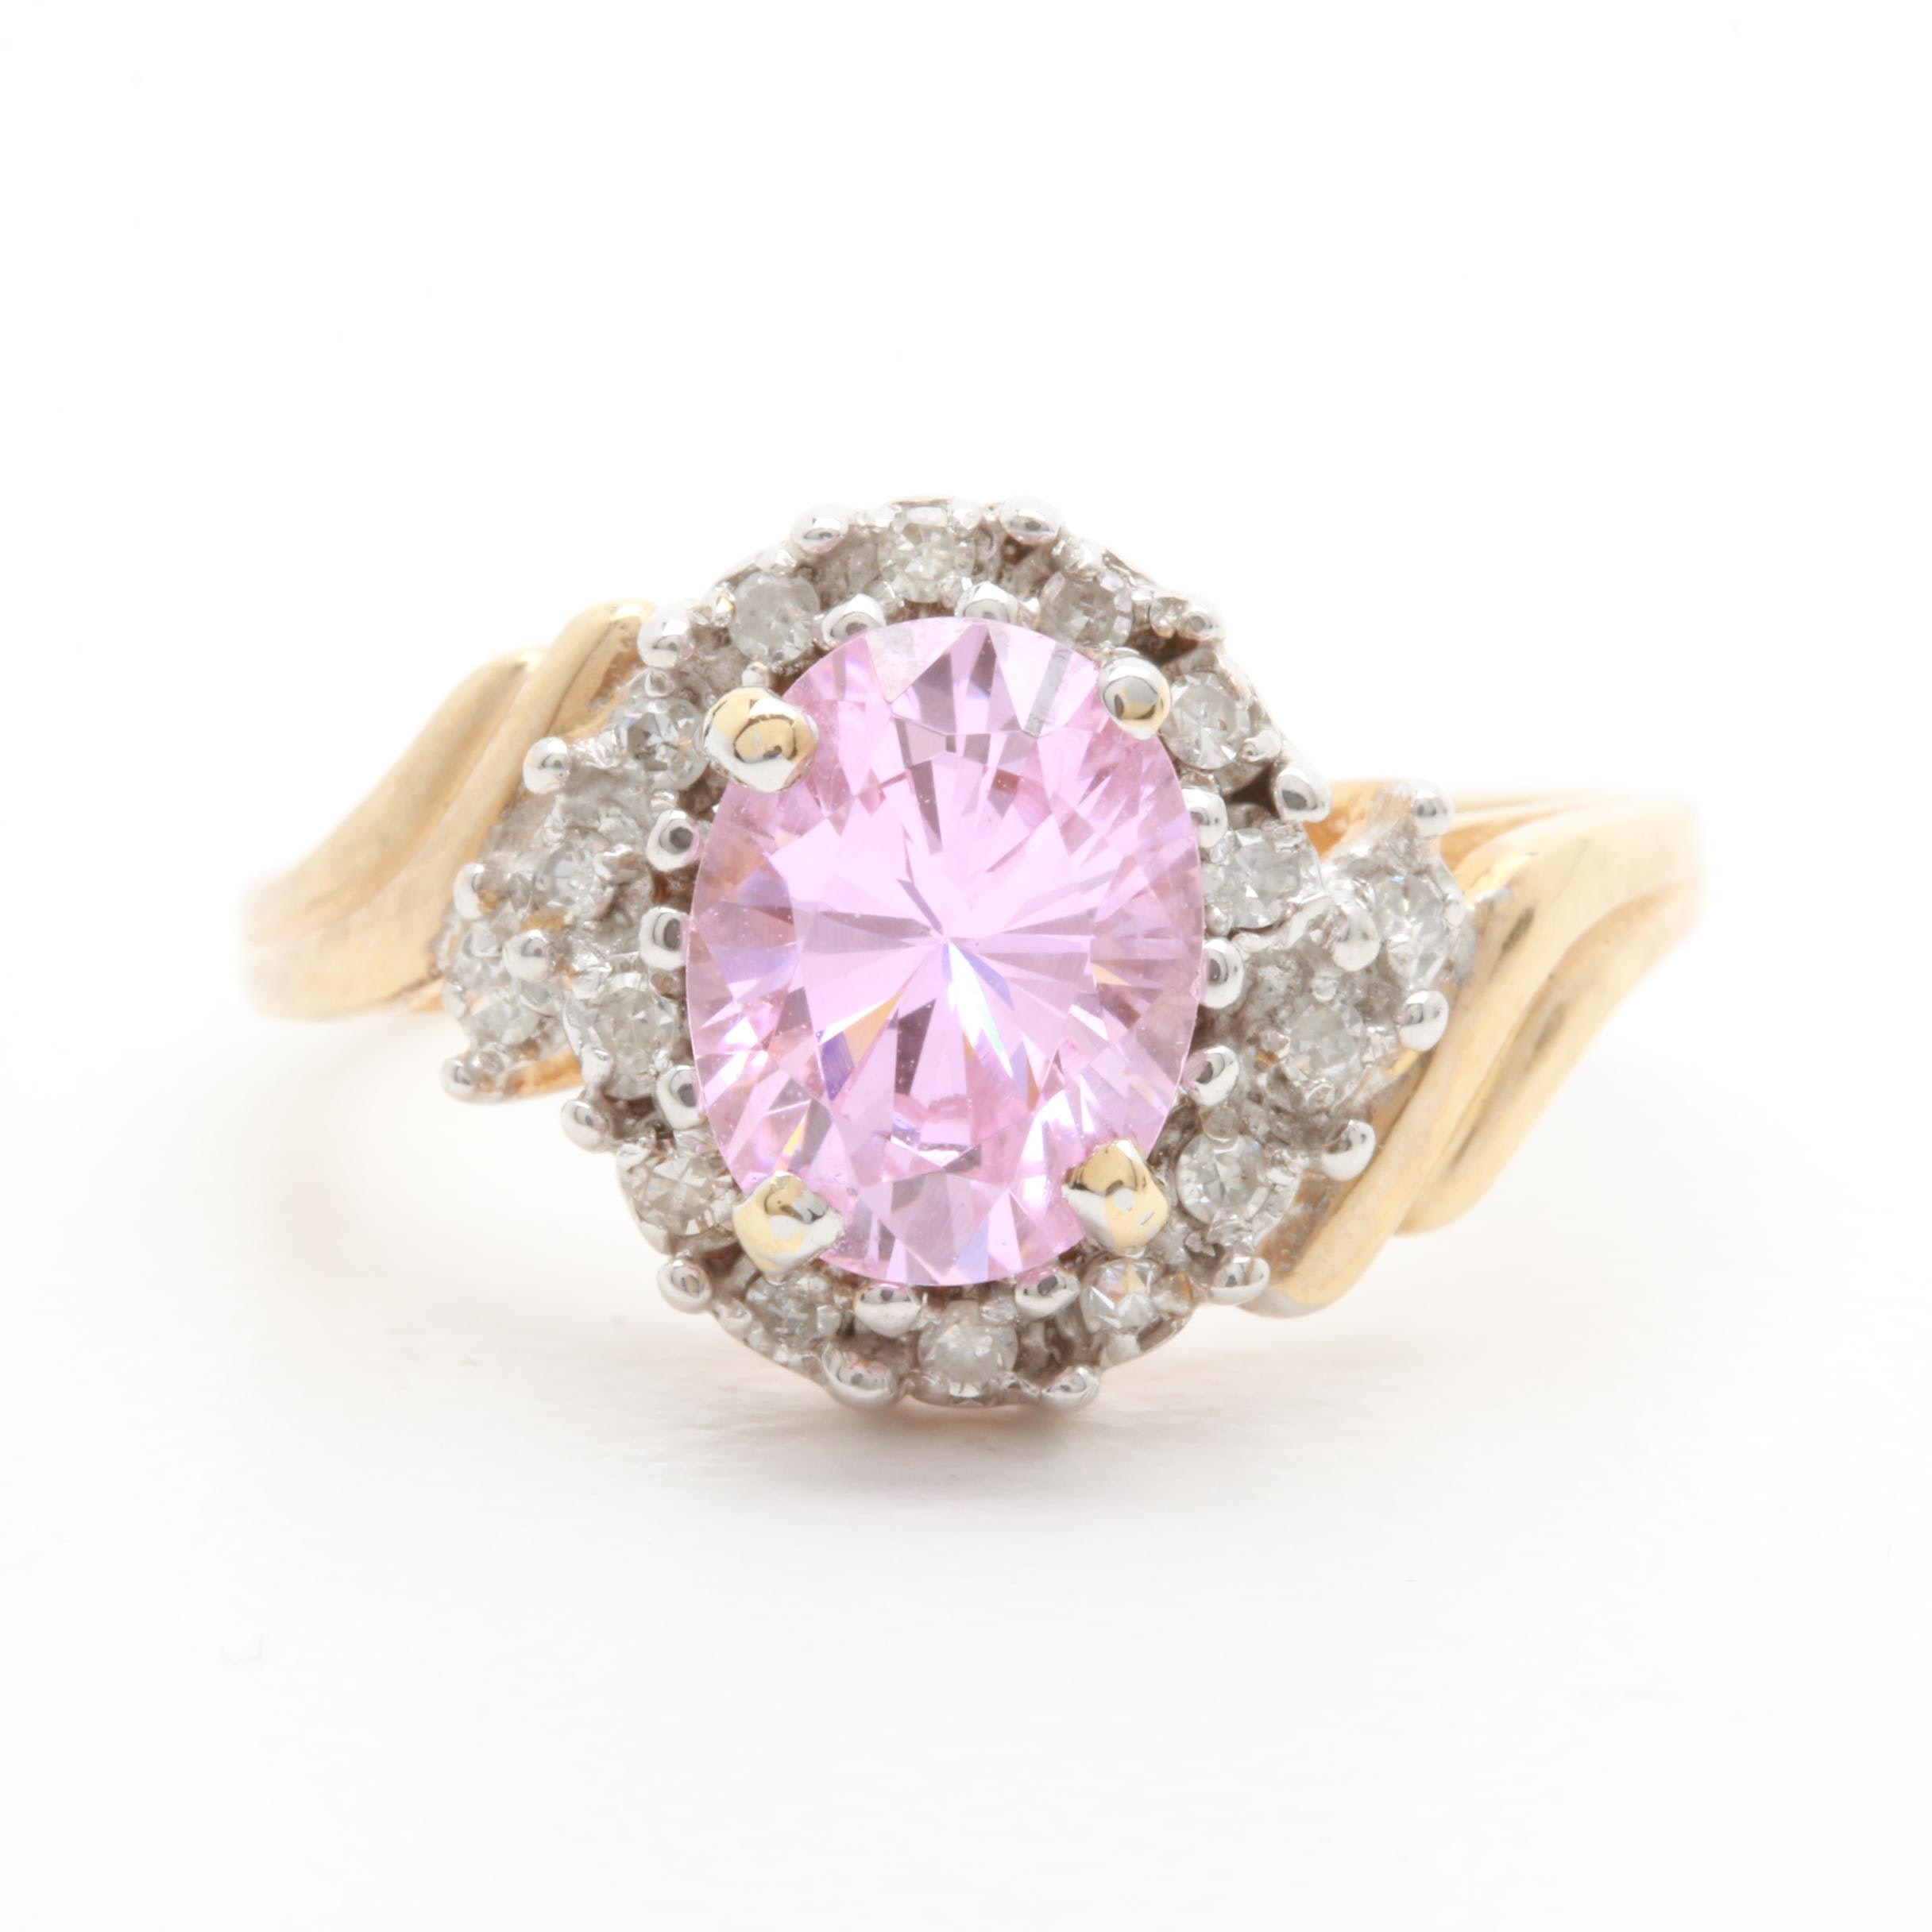 10K Yellow Gold Pink Cubic Zirconia and Diamond Ring